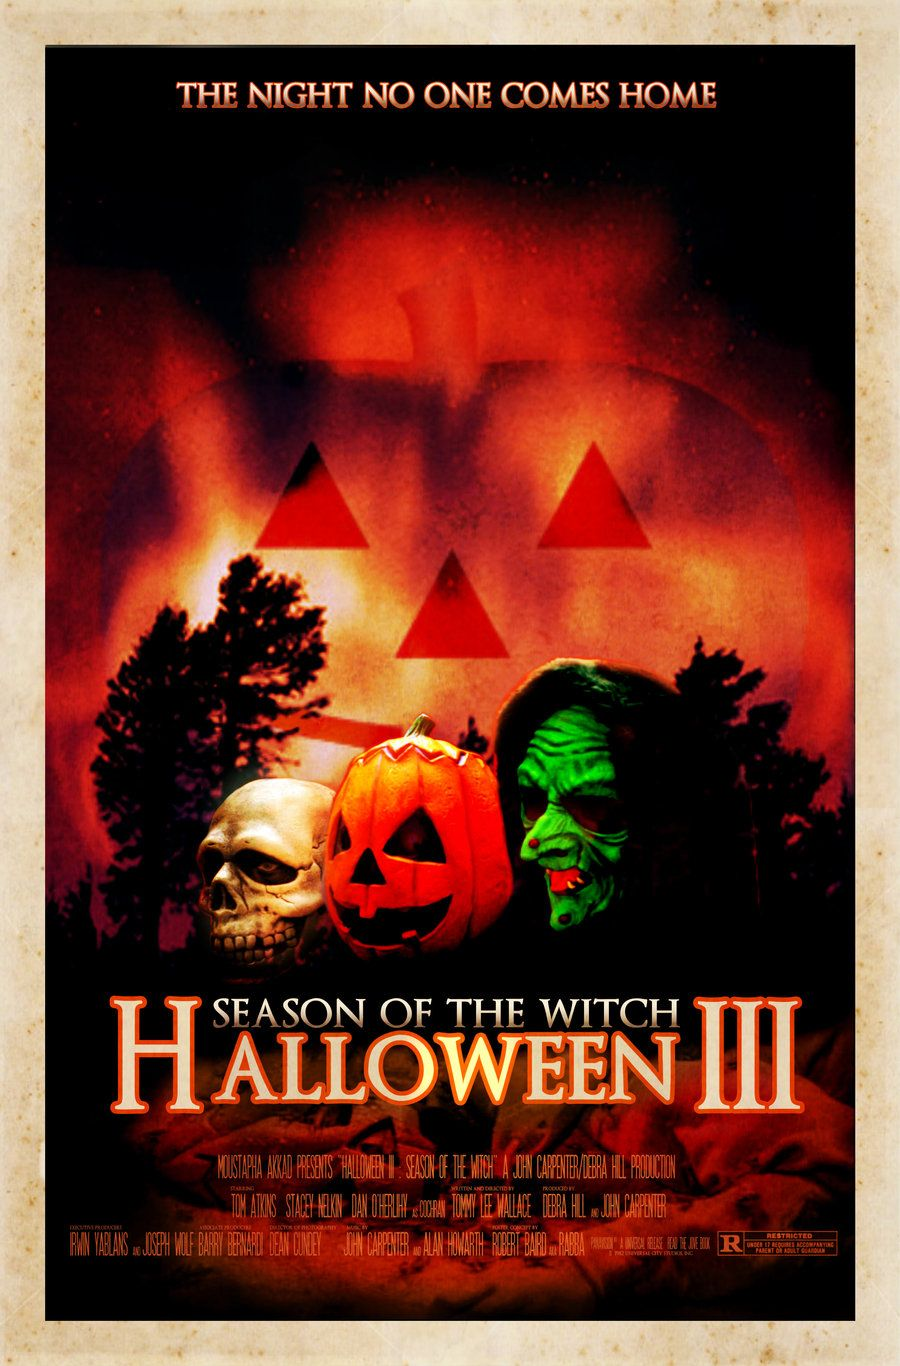 1000+ images about Halloween III Season of the Witch on Pinterest